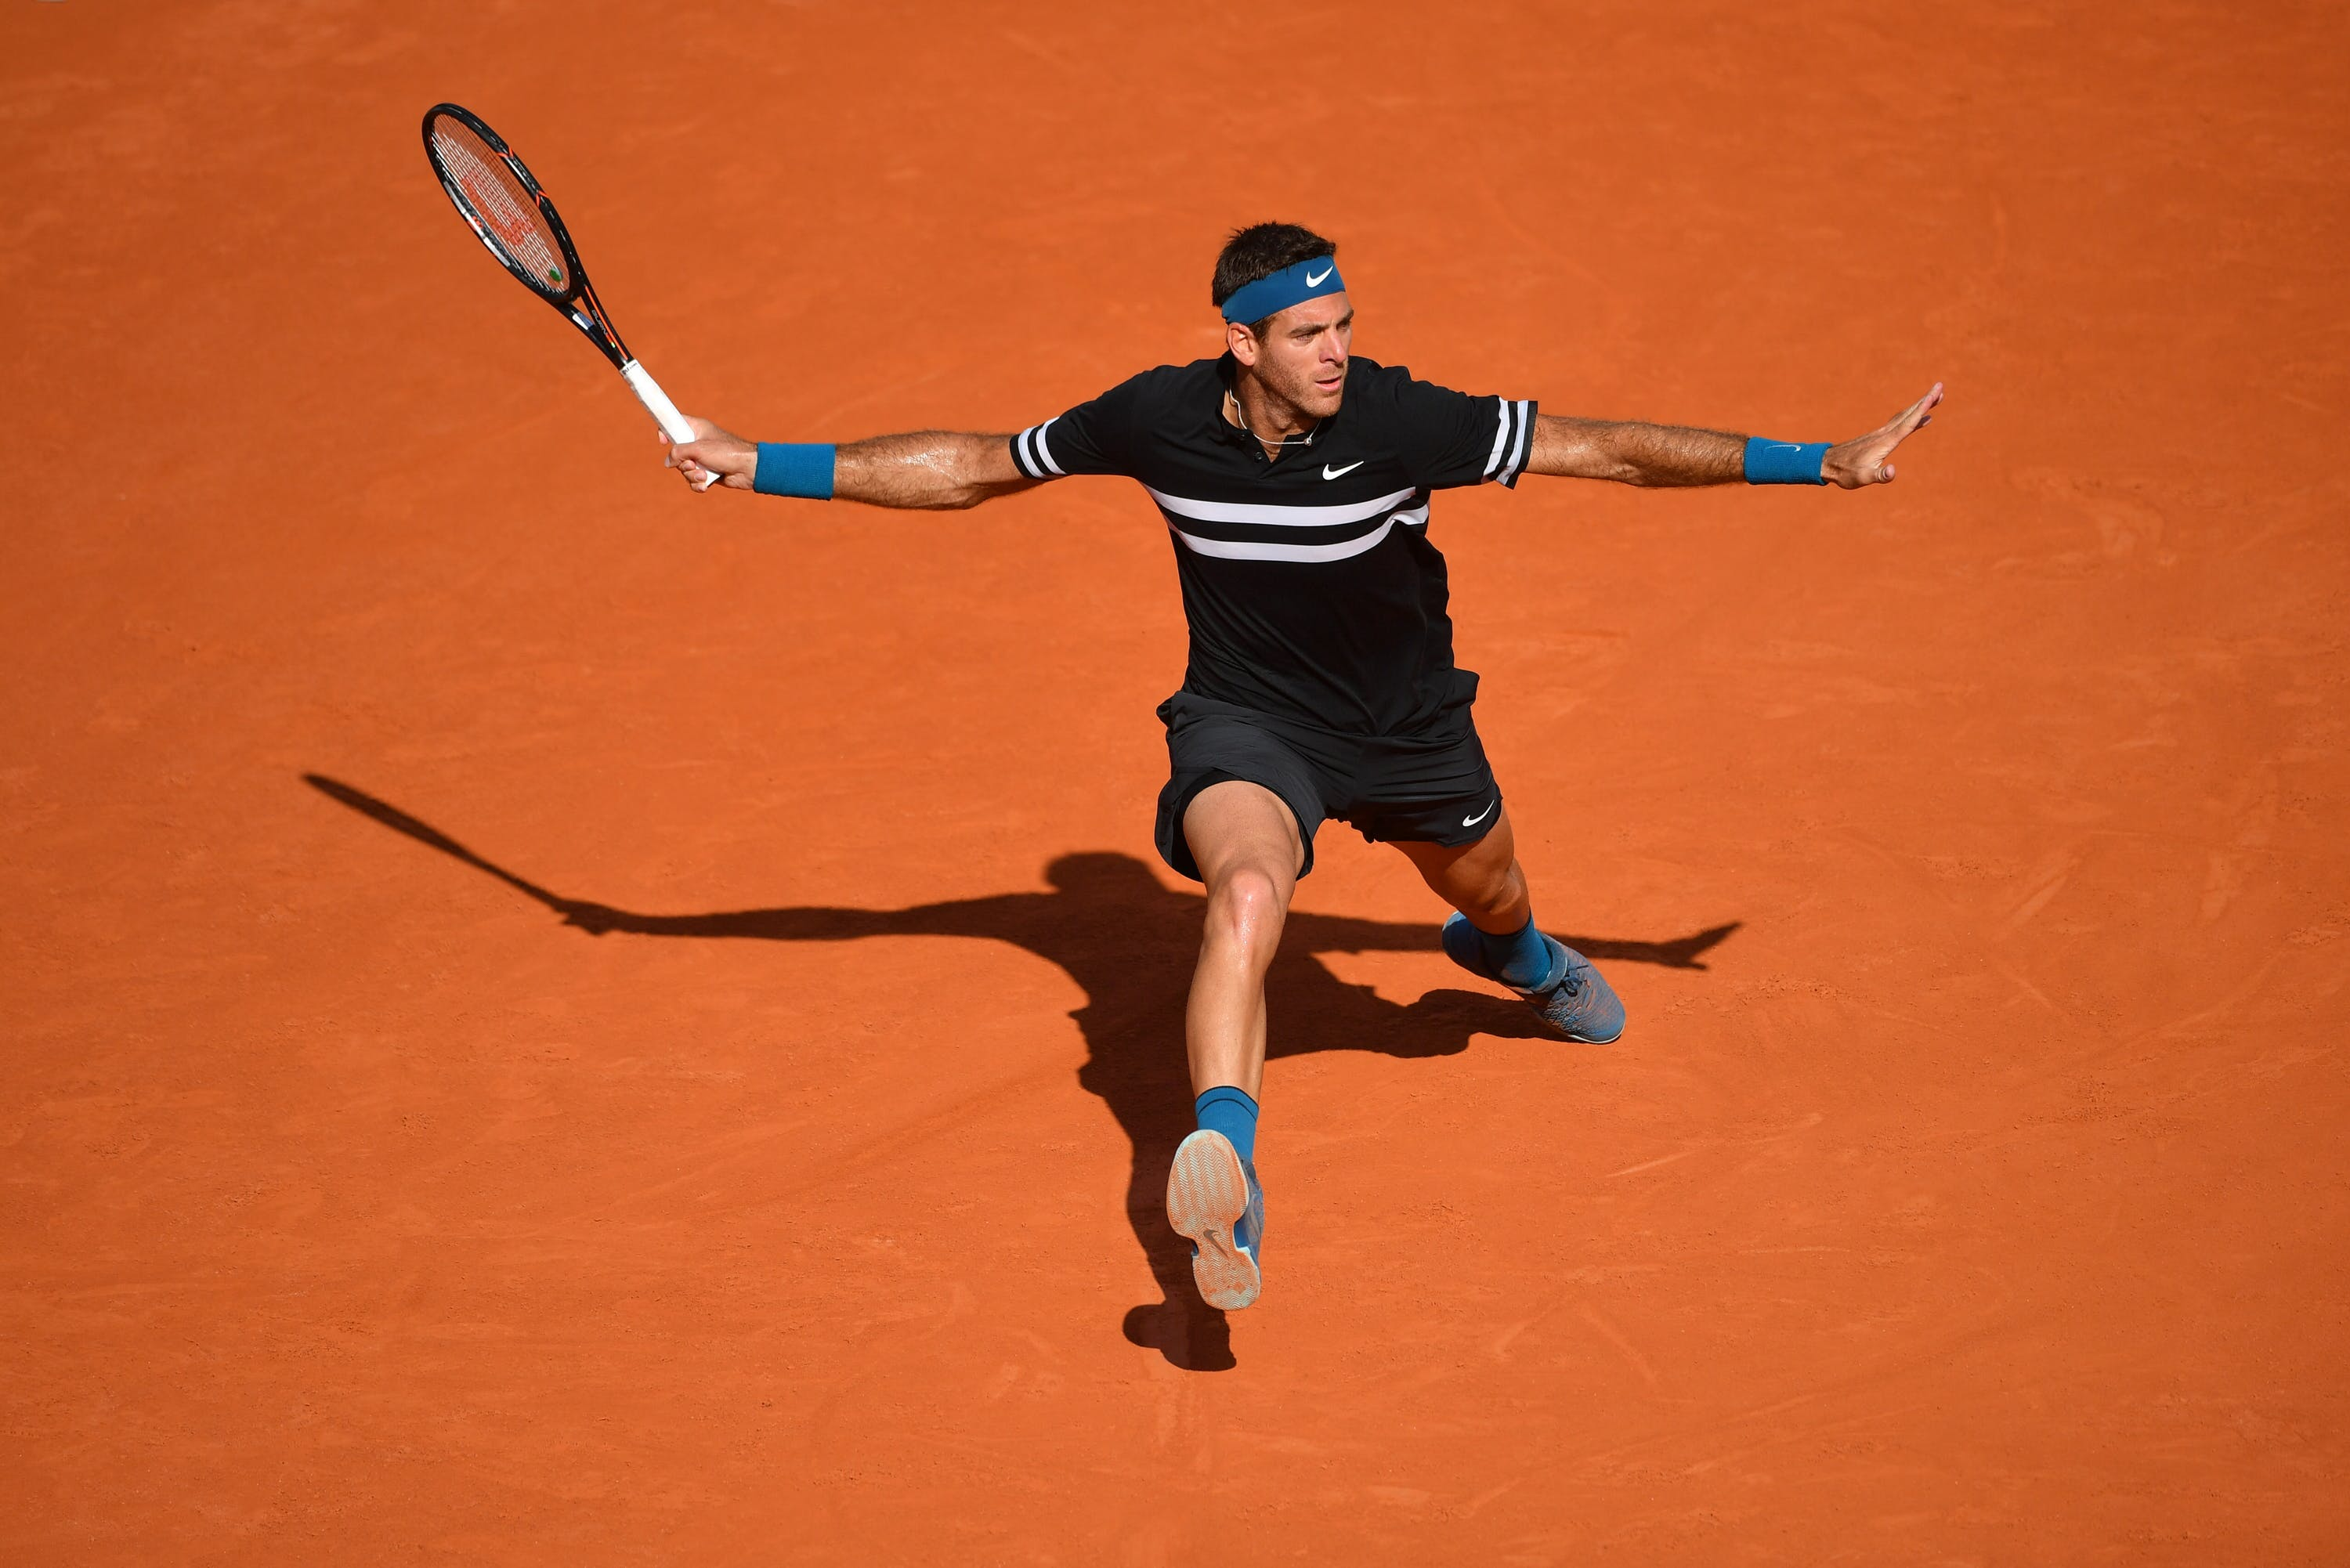 Juan Martin del Potro about to hit a forehand at Roland-Garros 2018